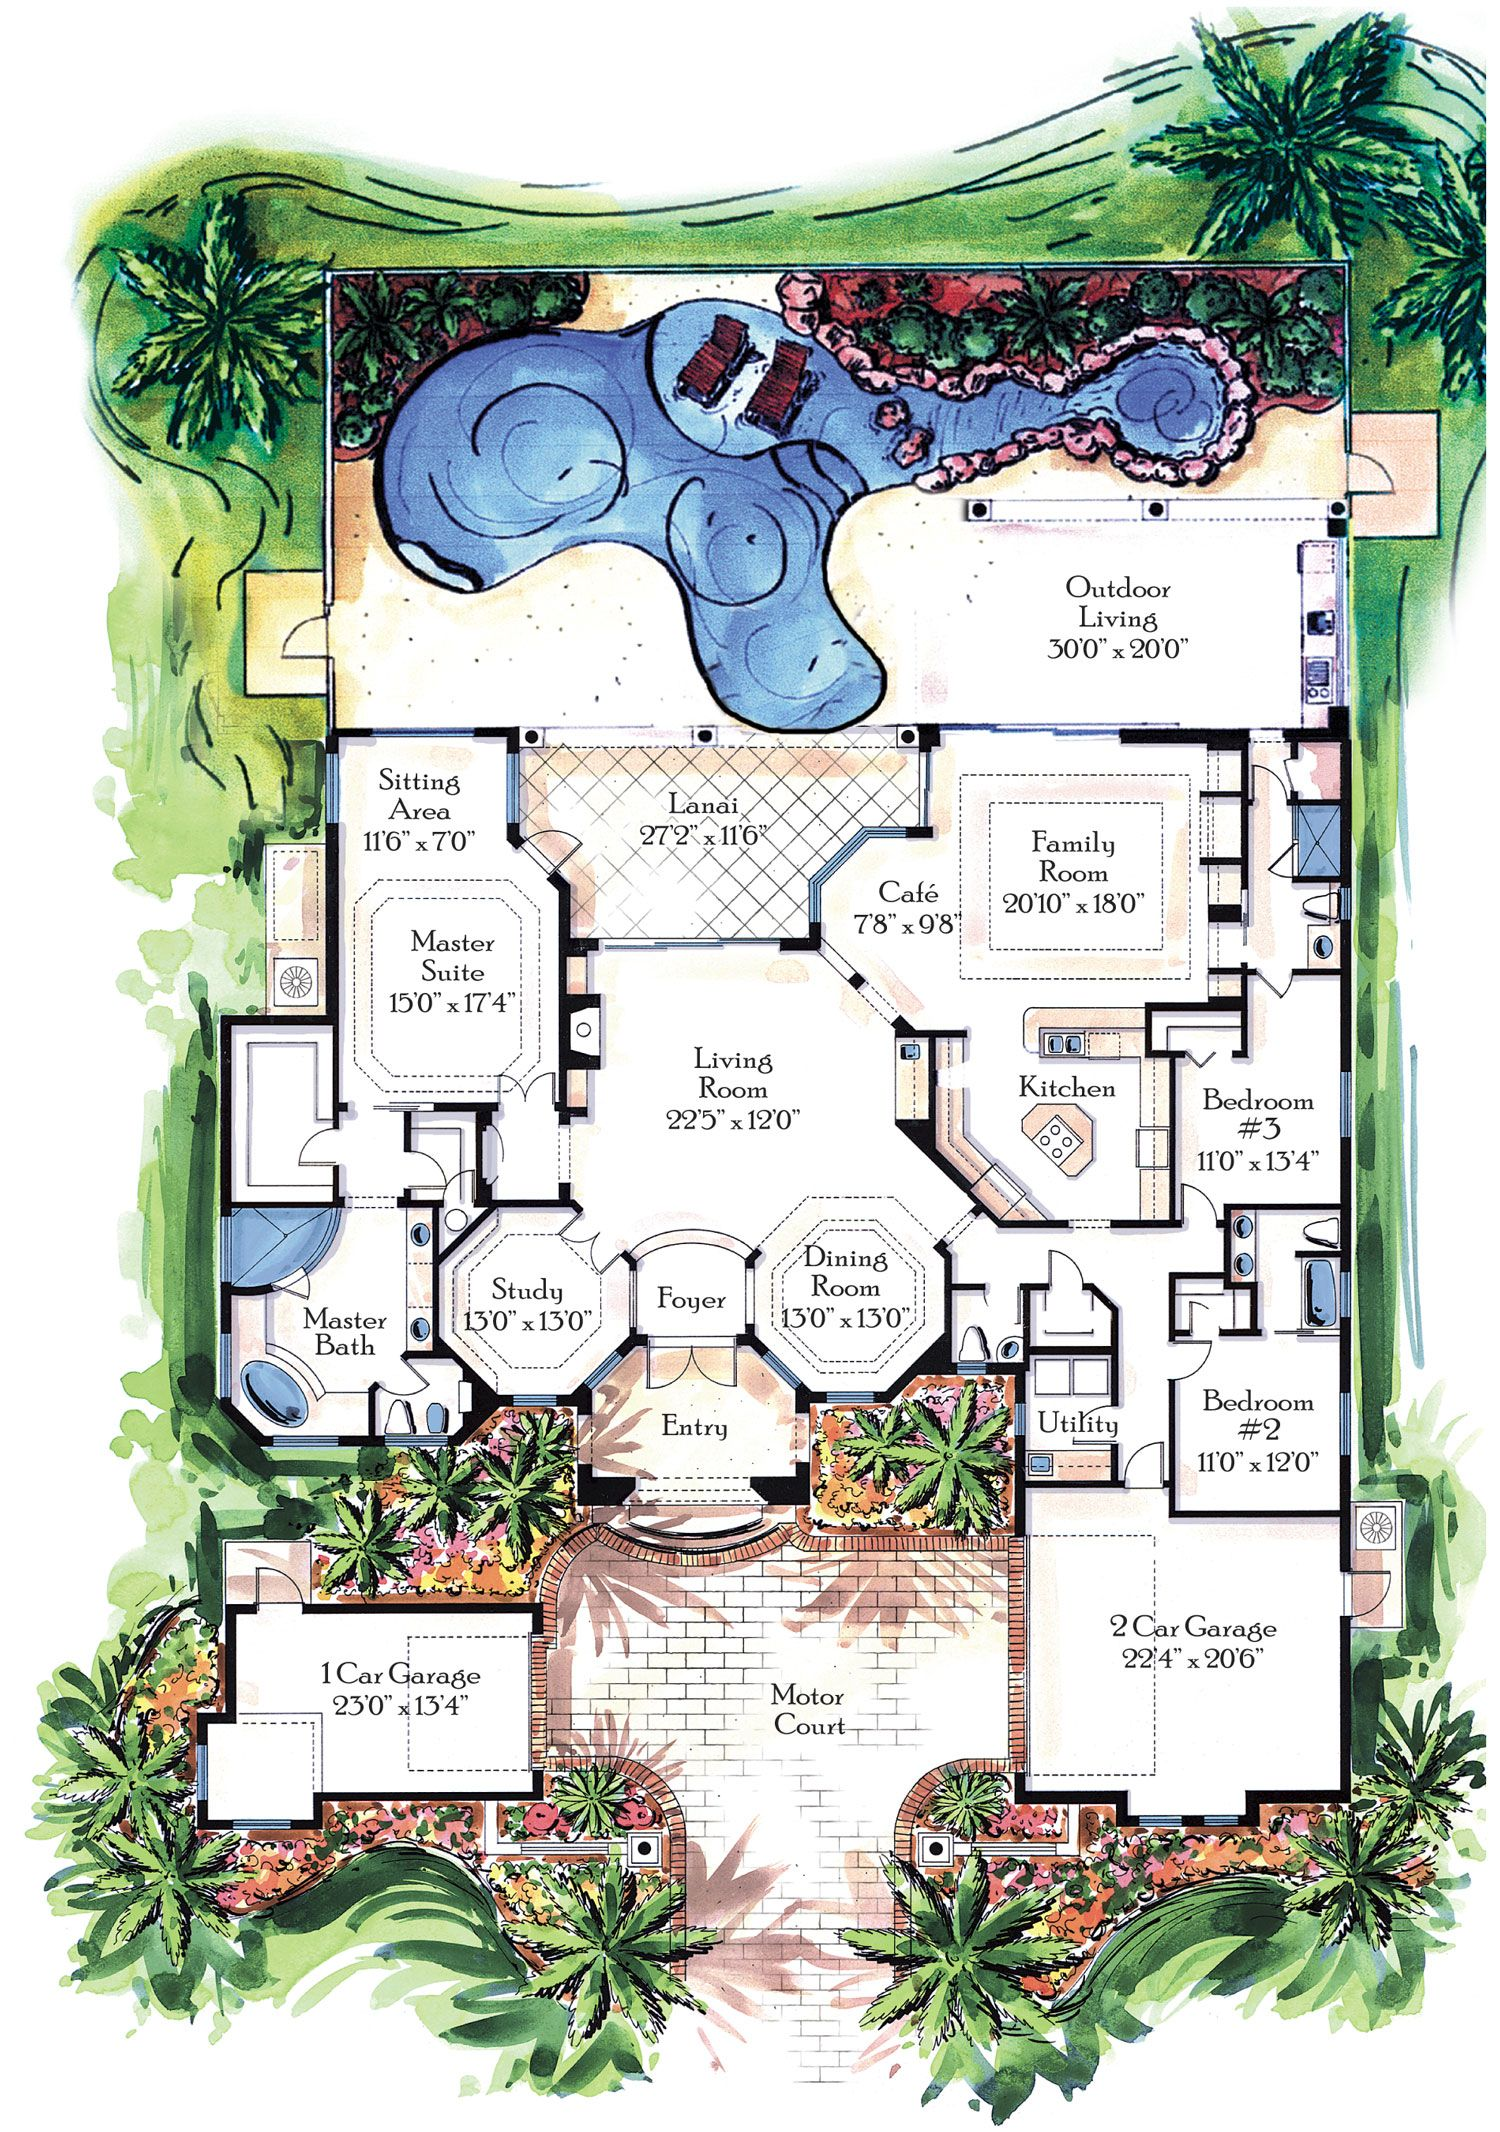 Luxury Floor Plans luxury floor plans stanford house luxury villa rental in barbados floor plan Ultra Luxury House Plans T Lovely Luxury House Floor Plans Designs Luxury Log Cabin Home Floor